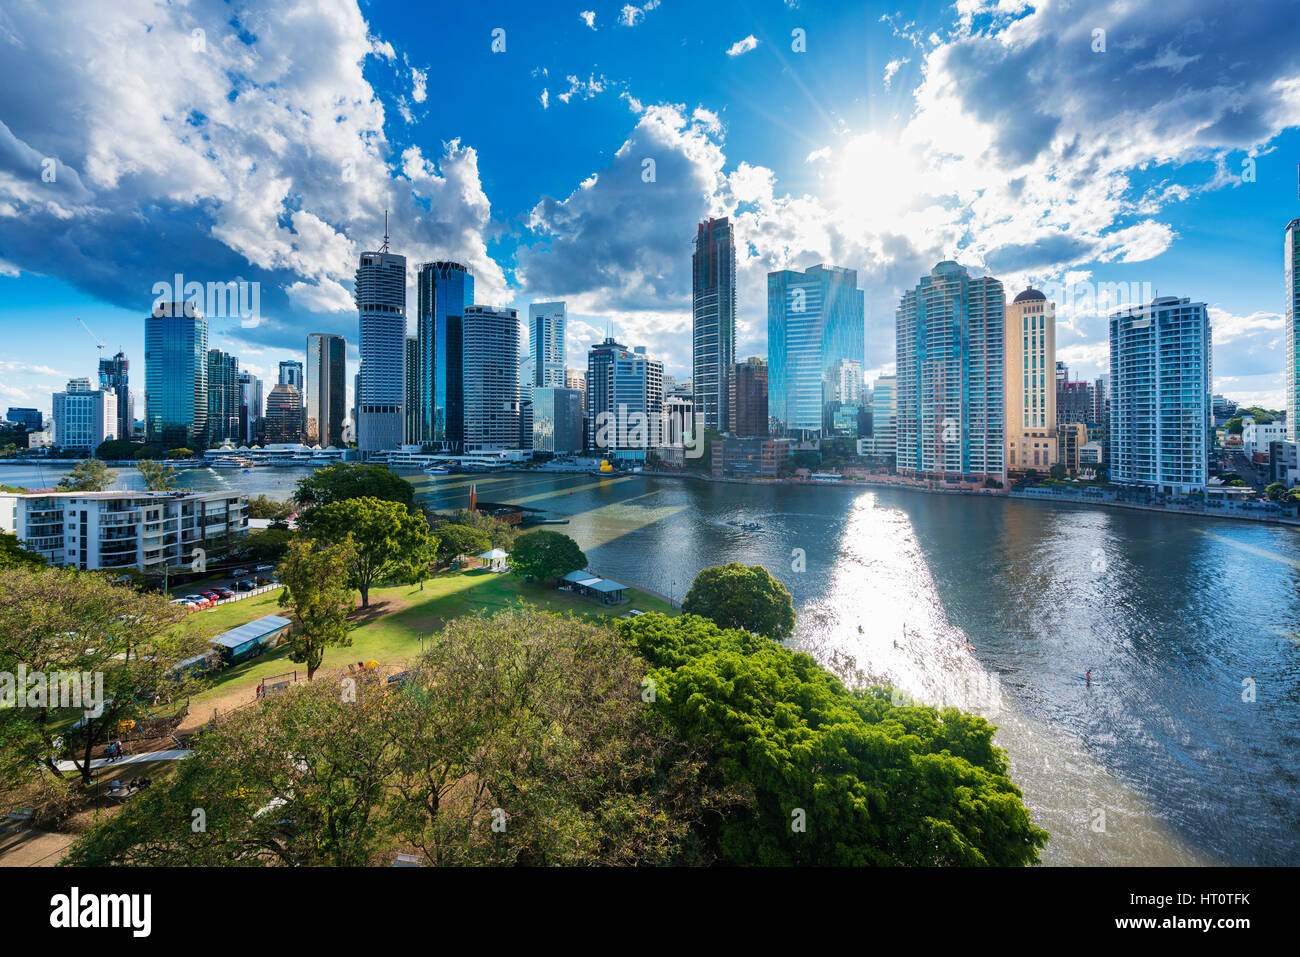 Brisbane, Australia - September 25, 2016: View of Brisbane city skyline and Brisbane river in late afternoon - Stock Image